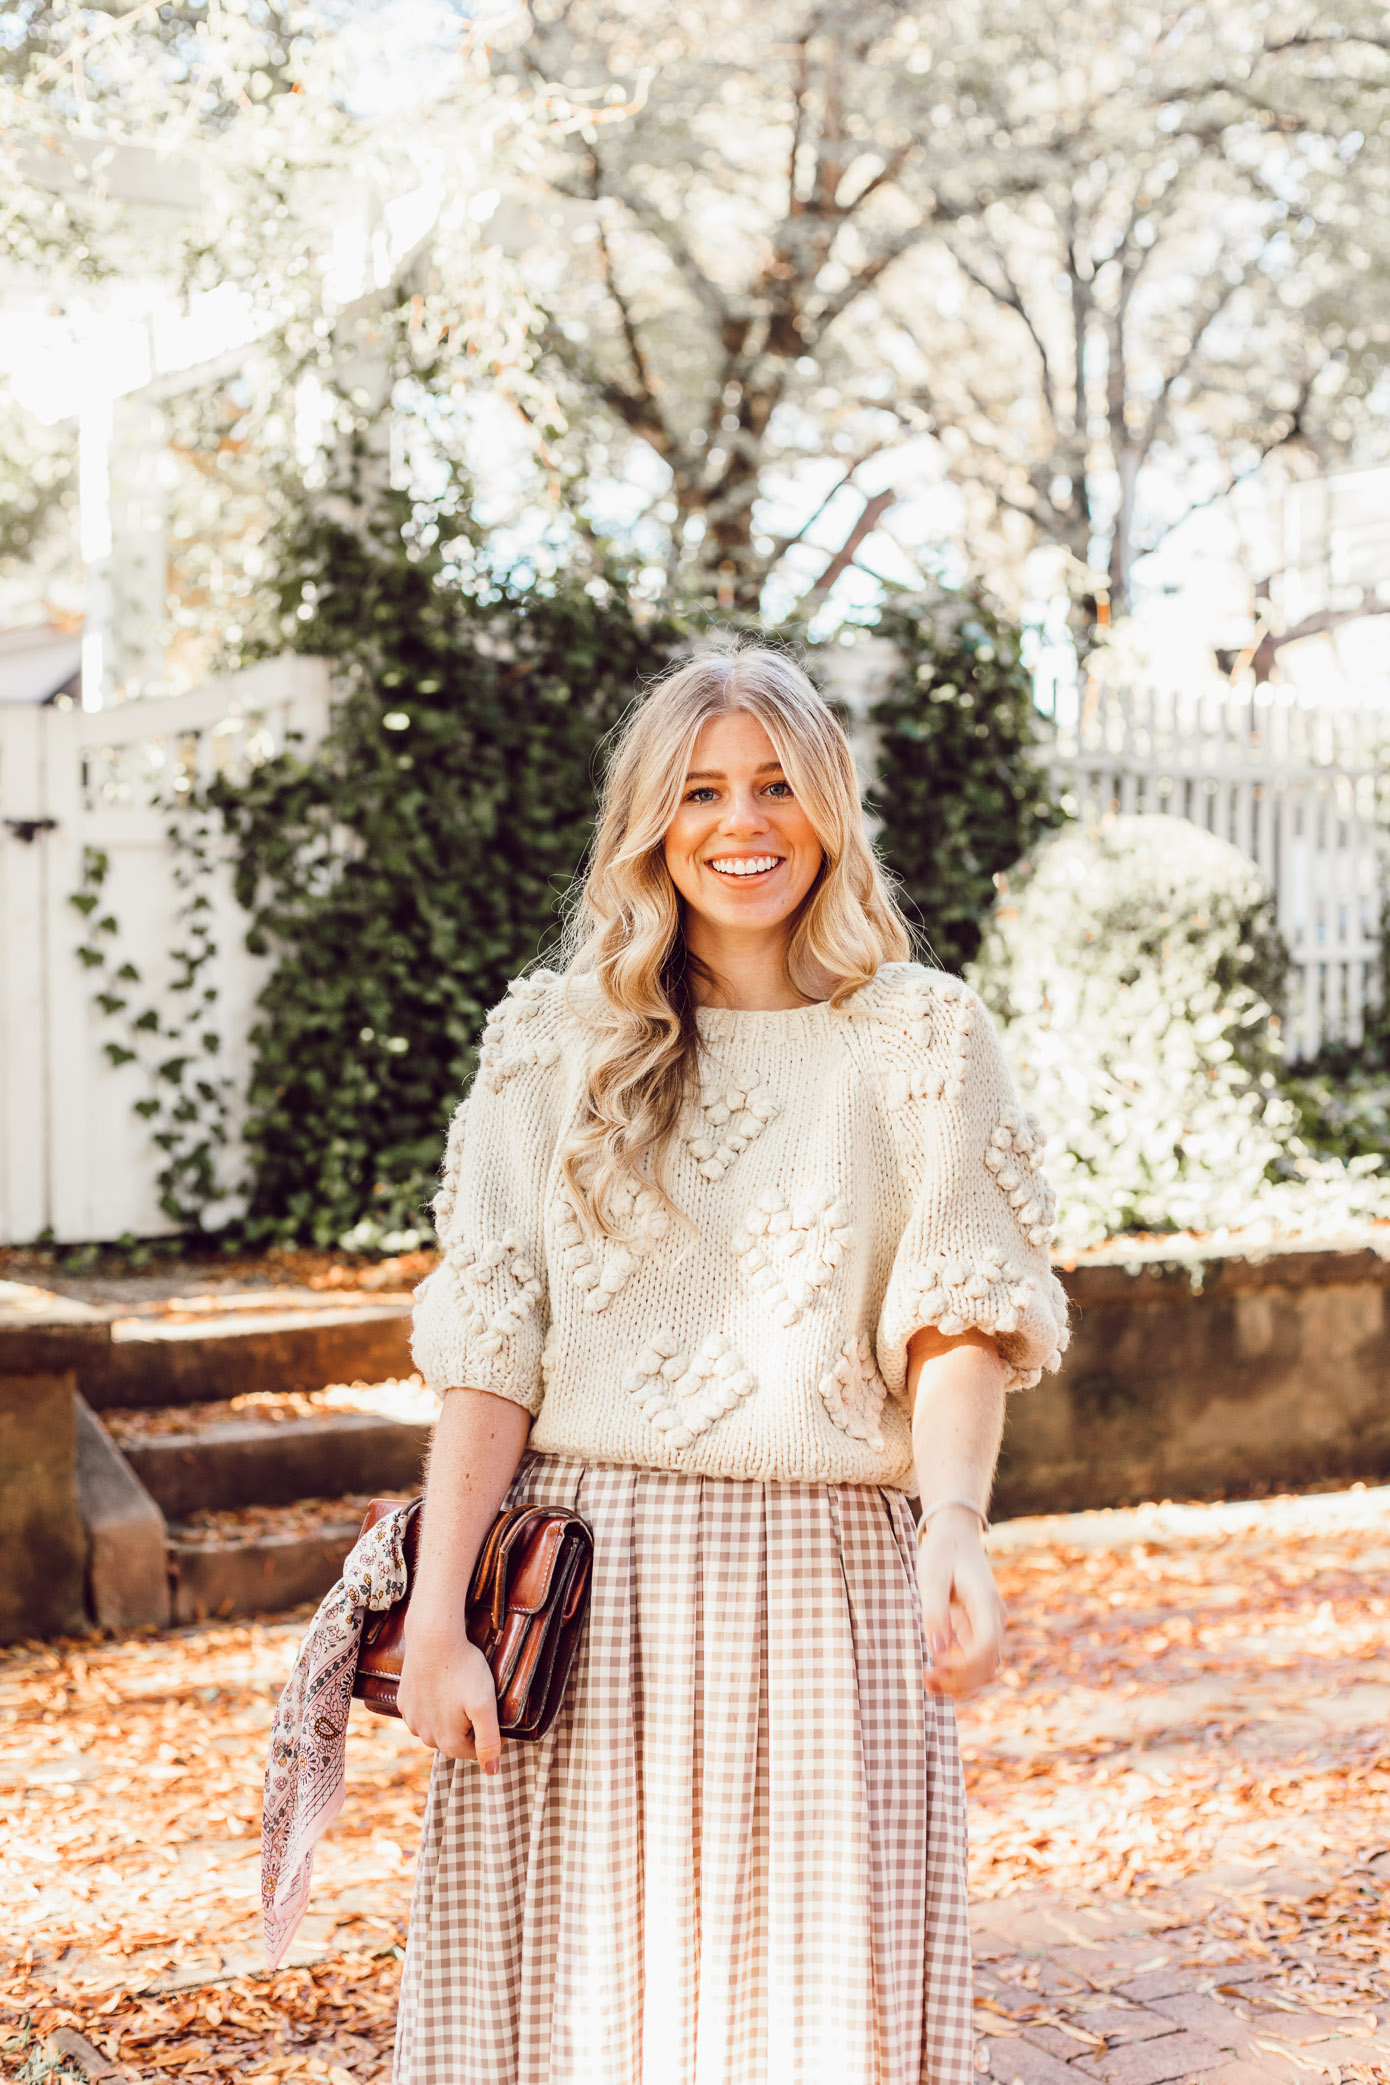 Spice Up Your Winter Date Night Look with a Winter Maxi Skirt featured on Louella Reese Blog | Gingham Maxi Skirt, Pommed Heart Sweater